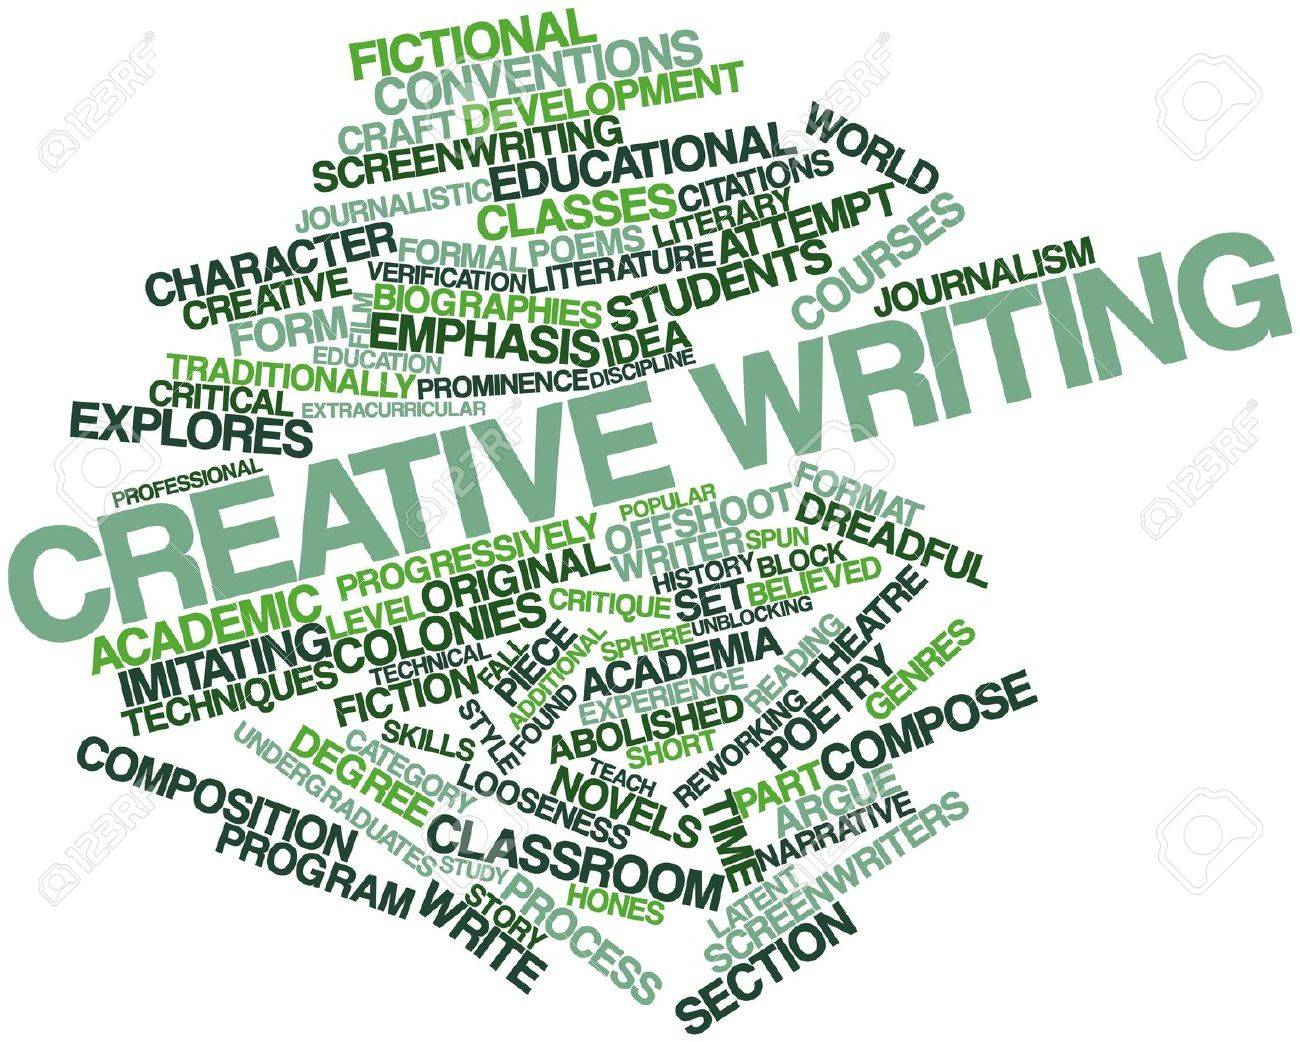 Creative writing images